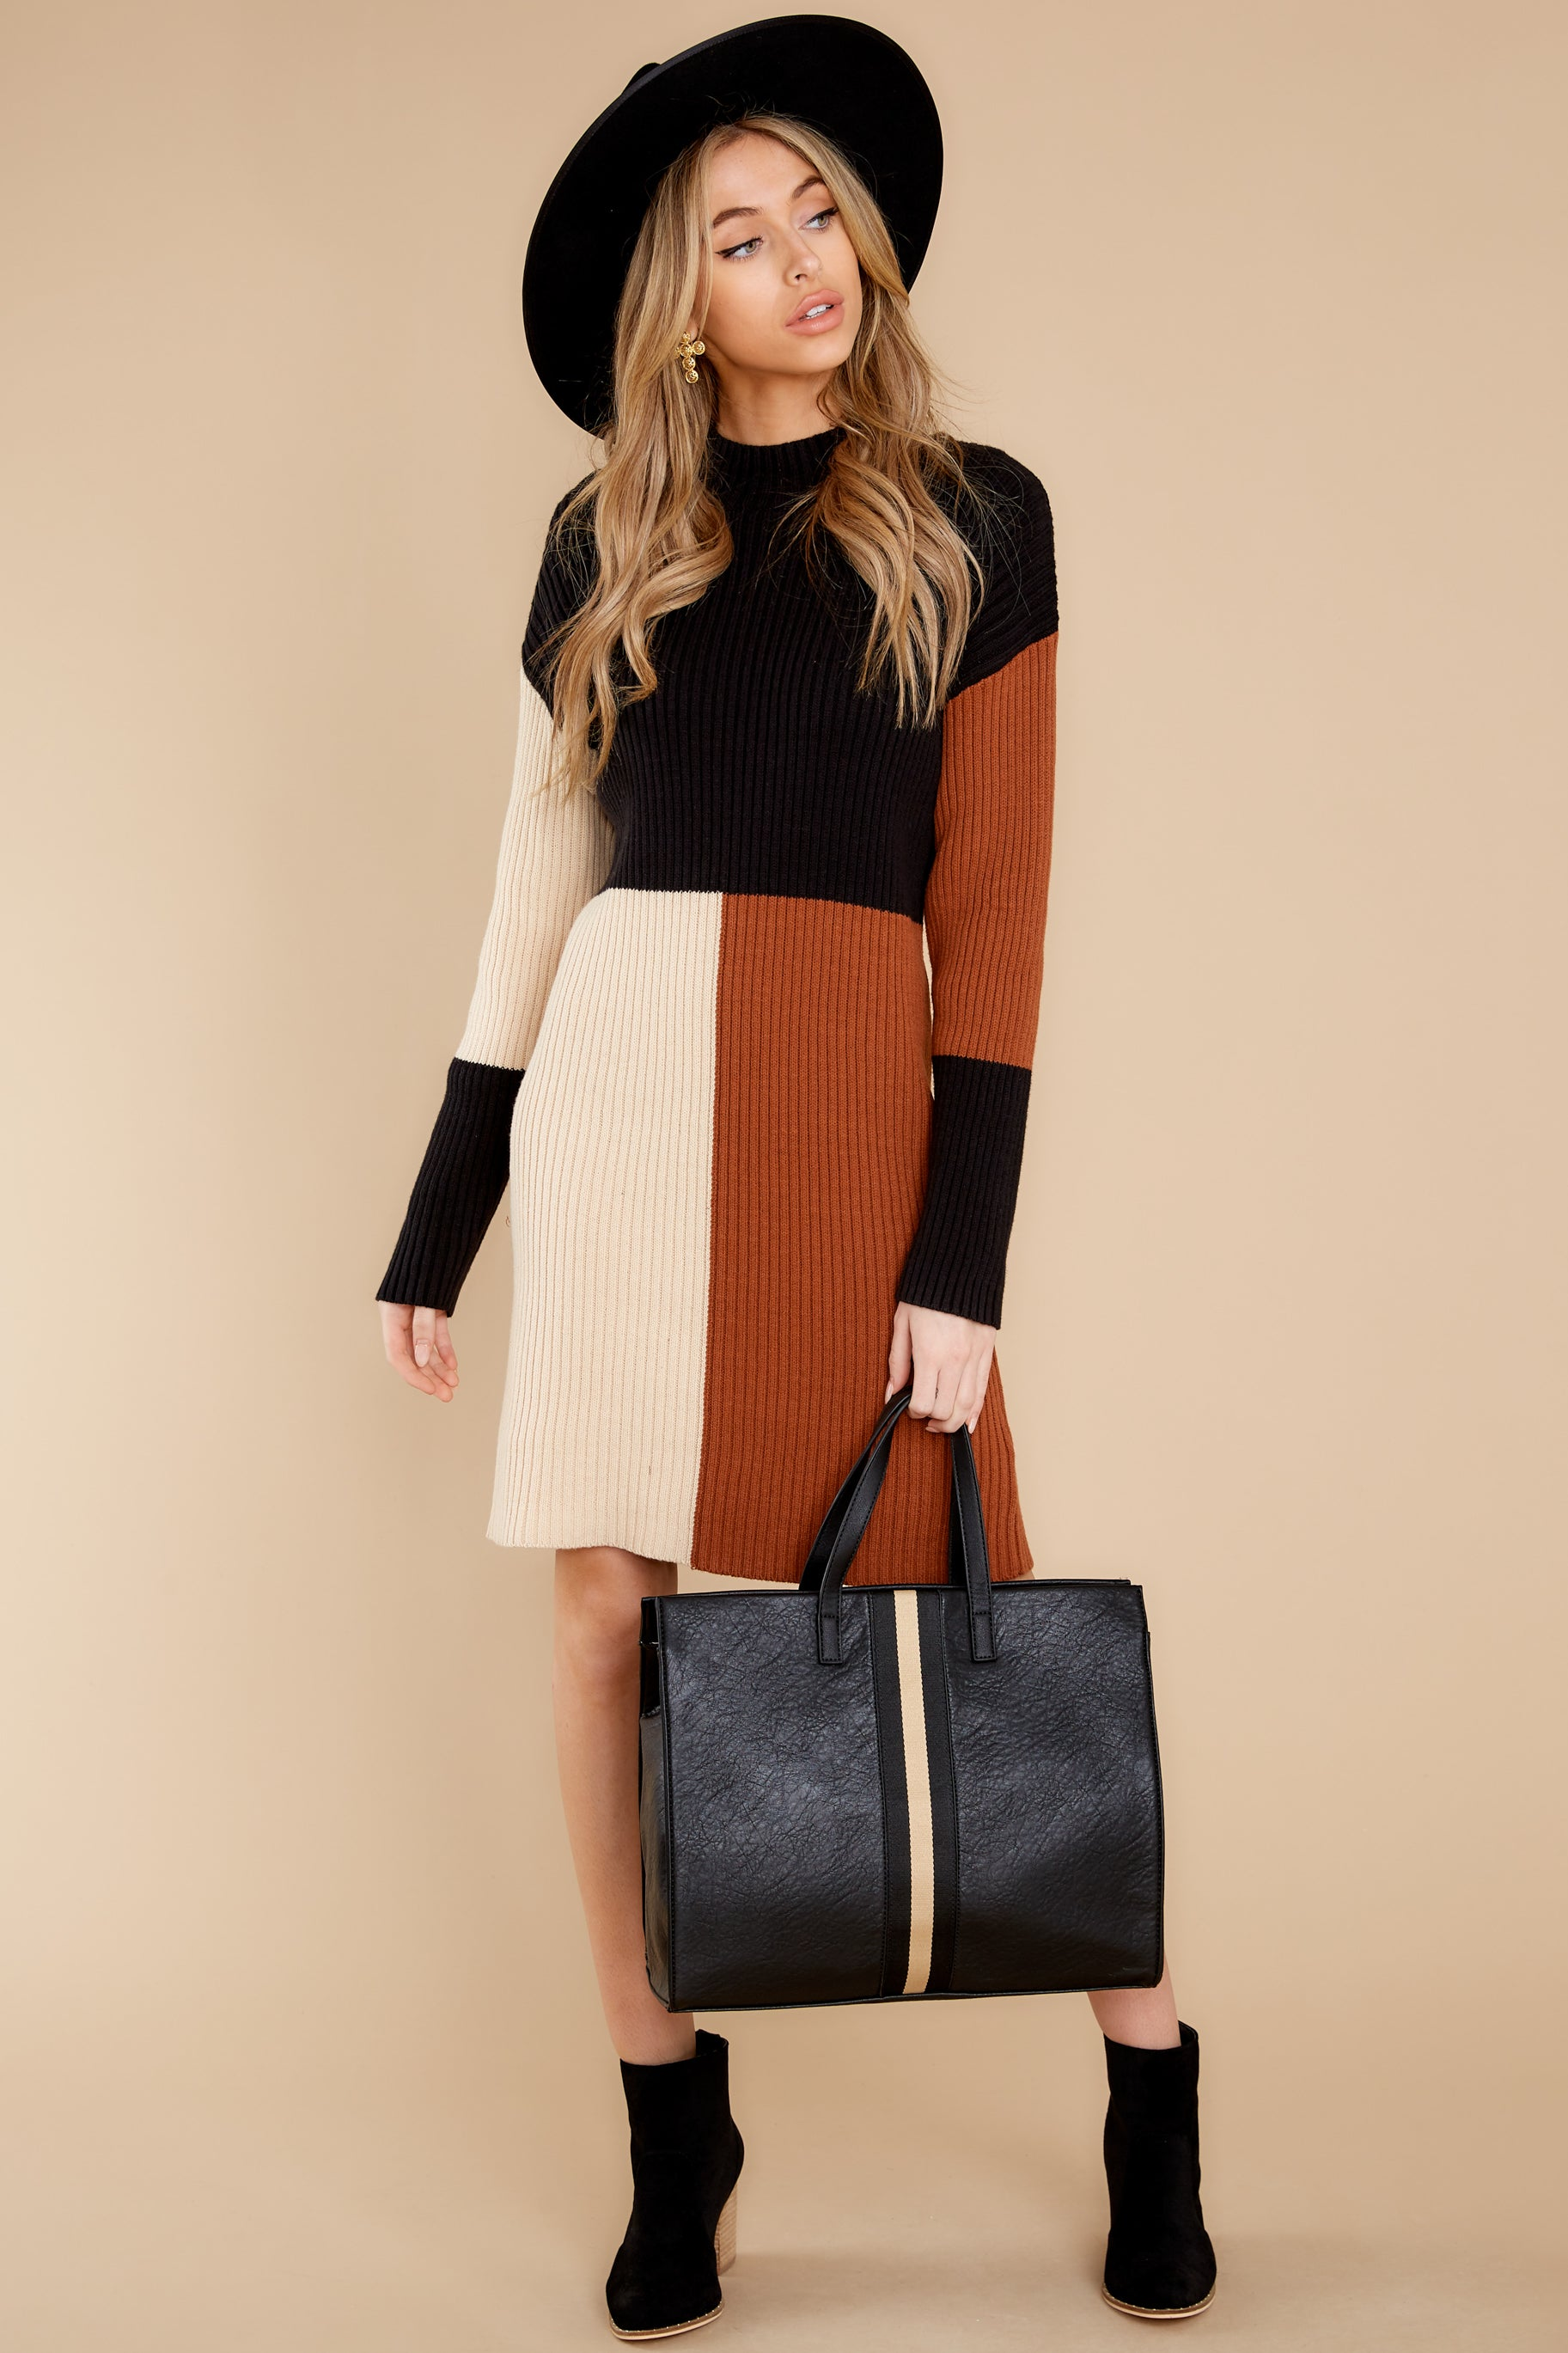 3 Around The Bend Black And Camel Sweater Dress at reddress.com